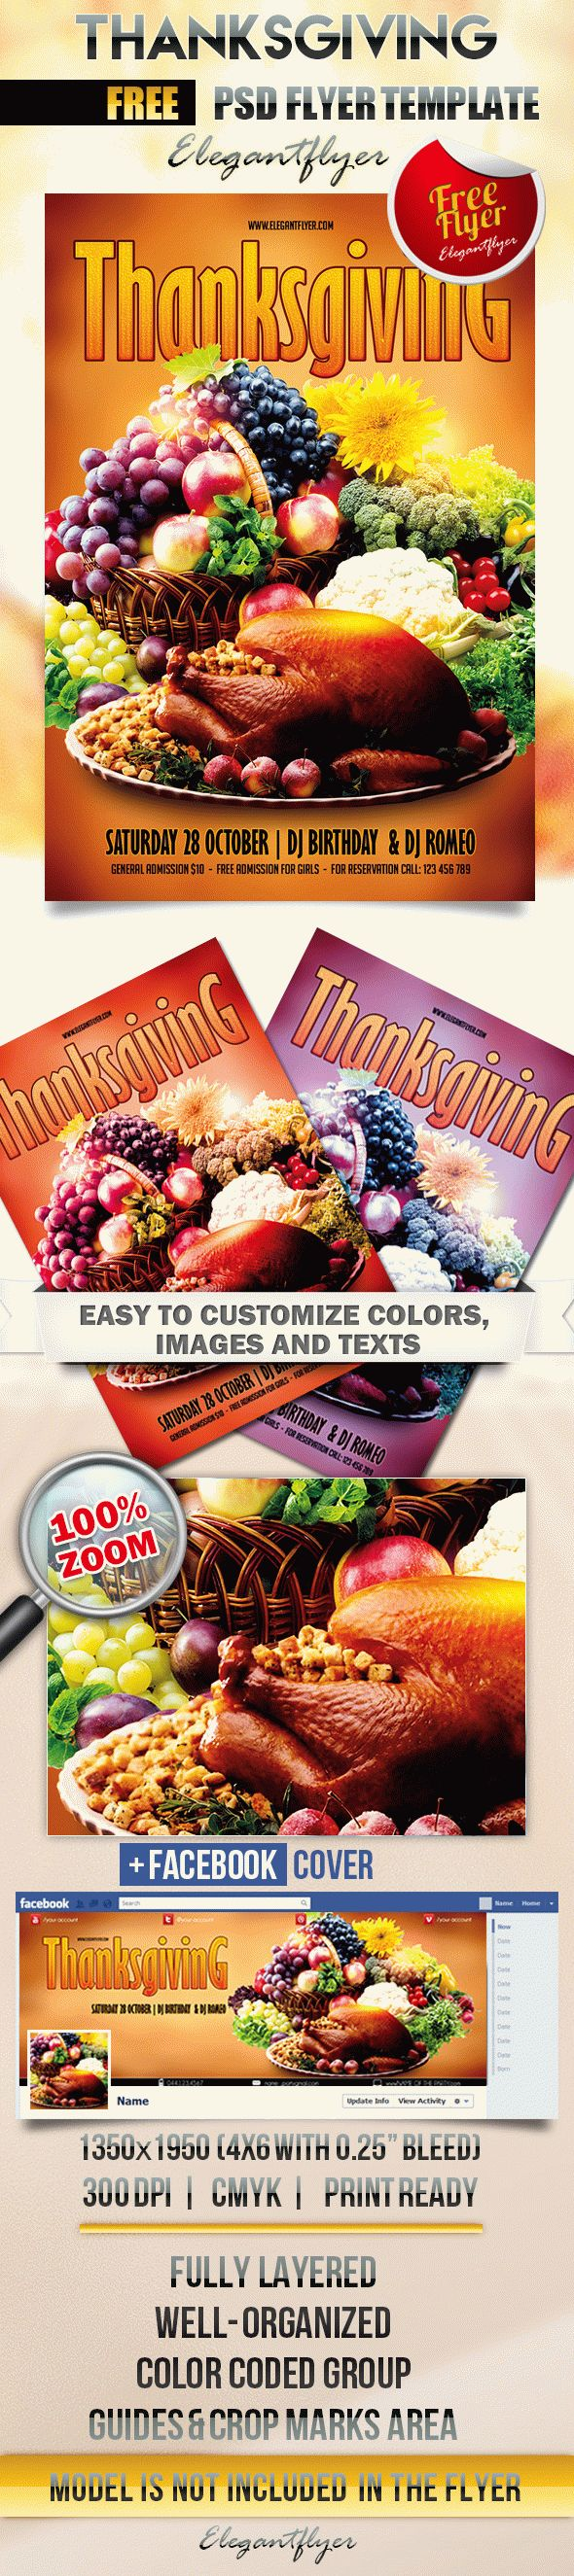 Free Flyer for Thanksgiving Dinners